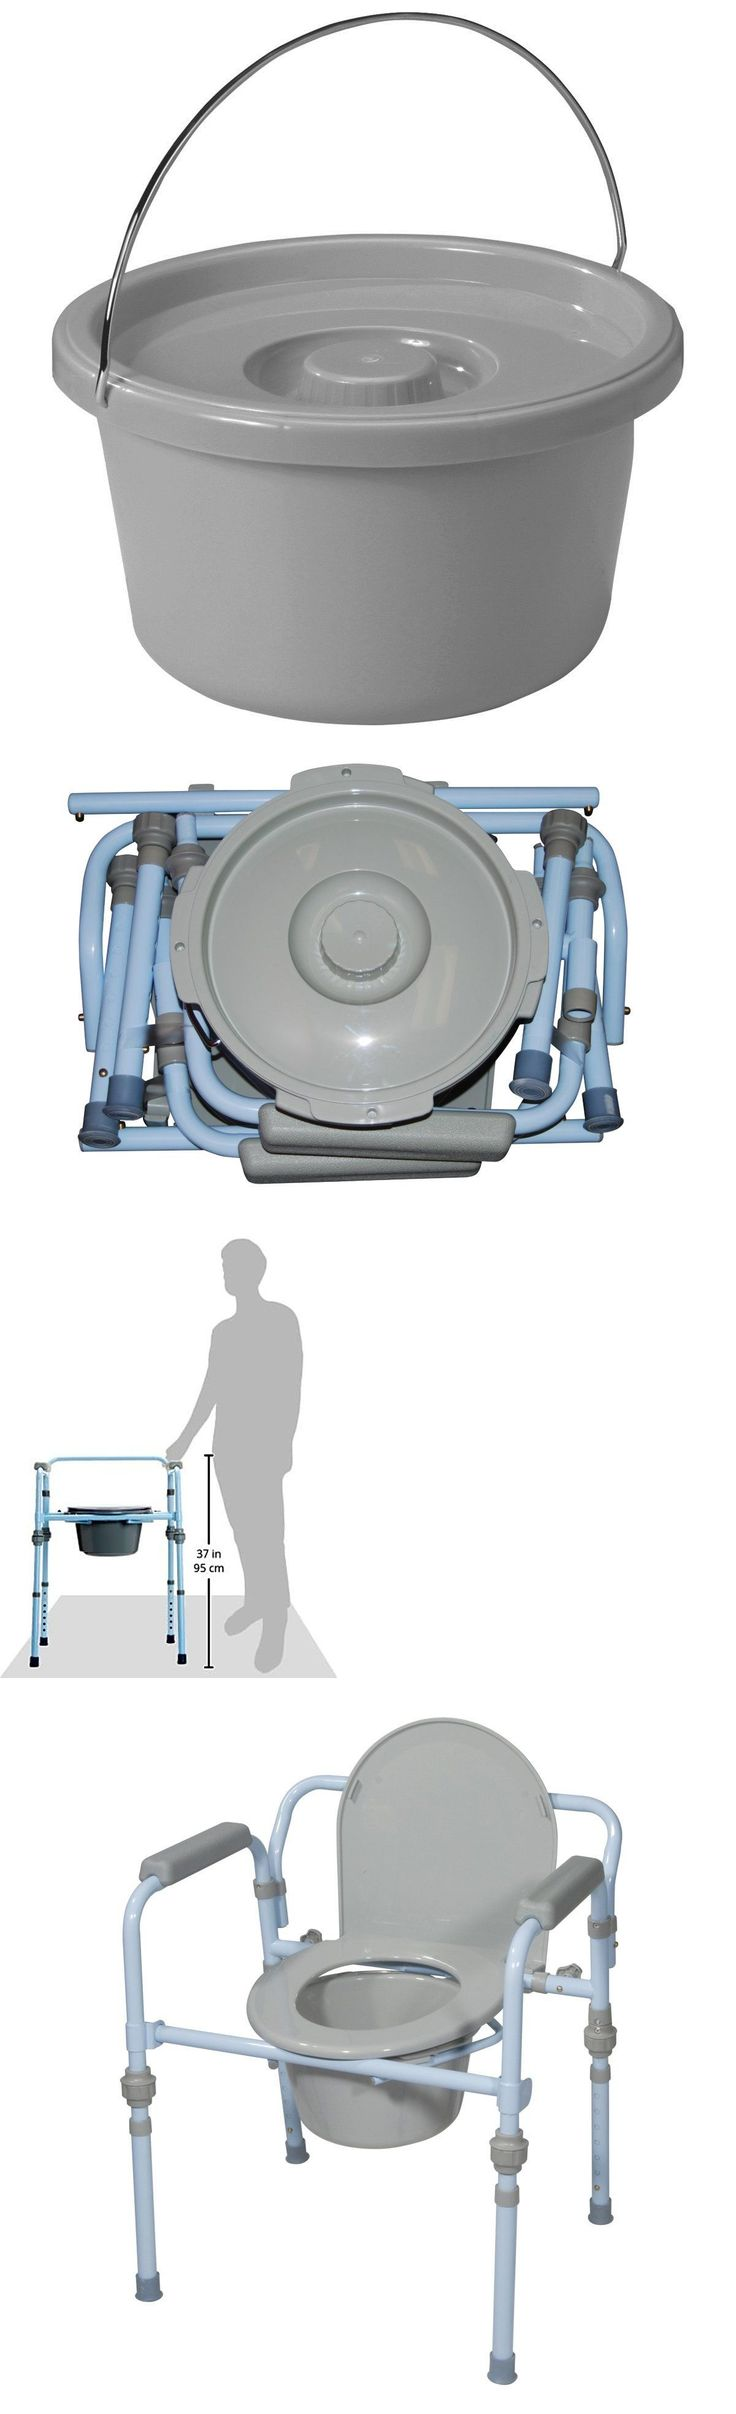 Portable commode folding bedside handicap adult toilet potty chair - Toilet Frames And Commodes Folding Commode Bedside Handicapped Toilet Seat Bucket Portable Safety Chair New